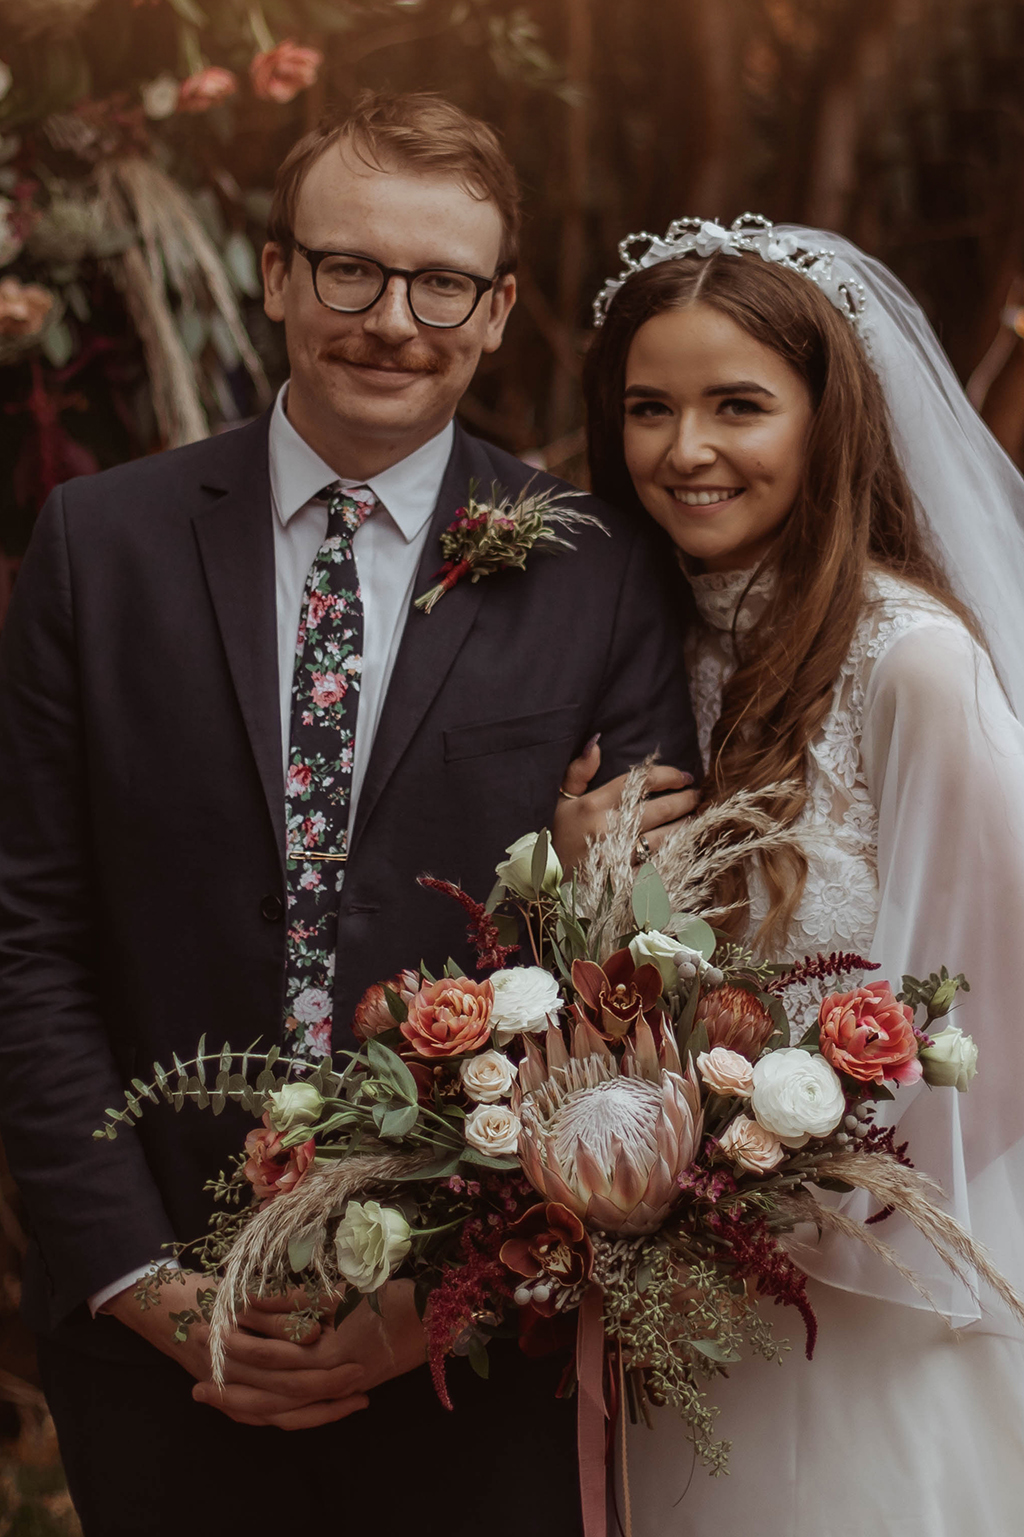 Thrifted Backyard Wedding with 1970s Vibes